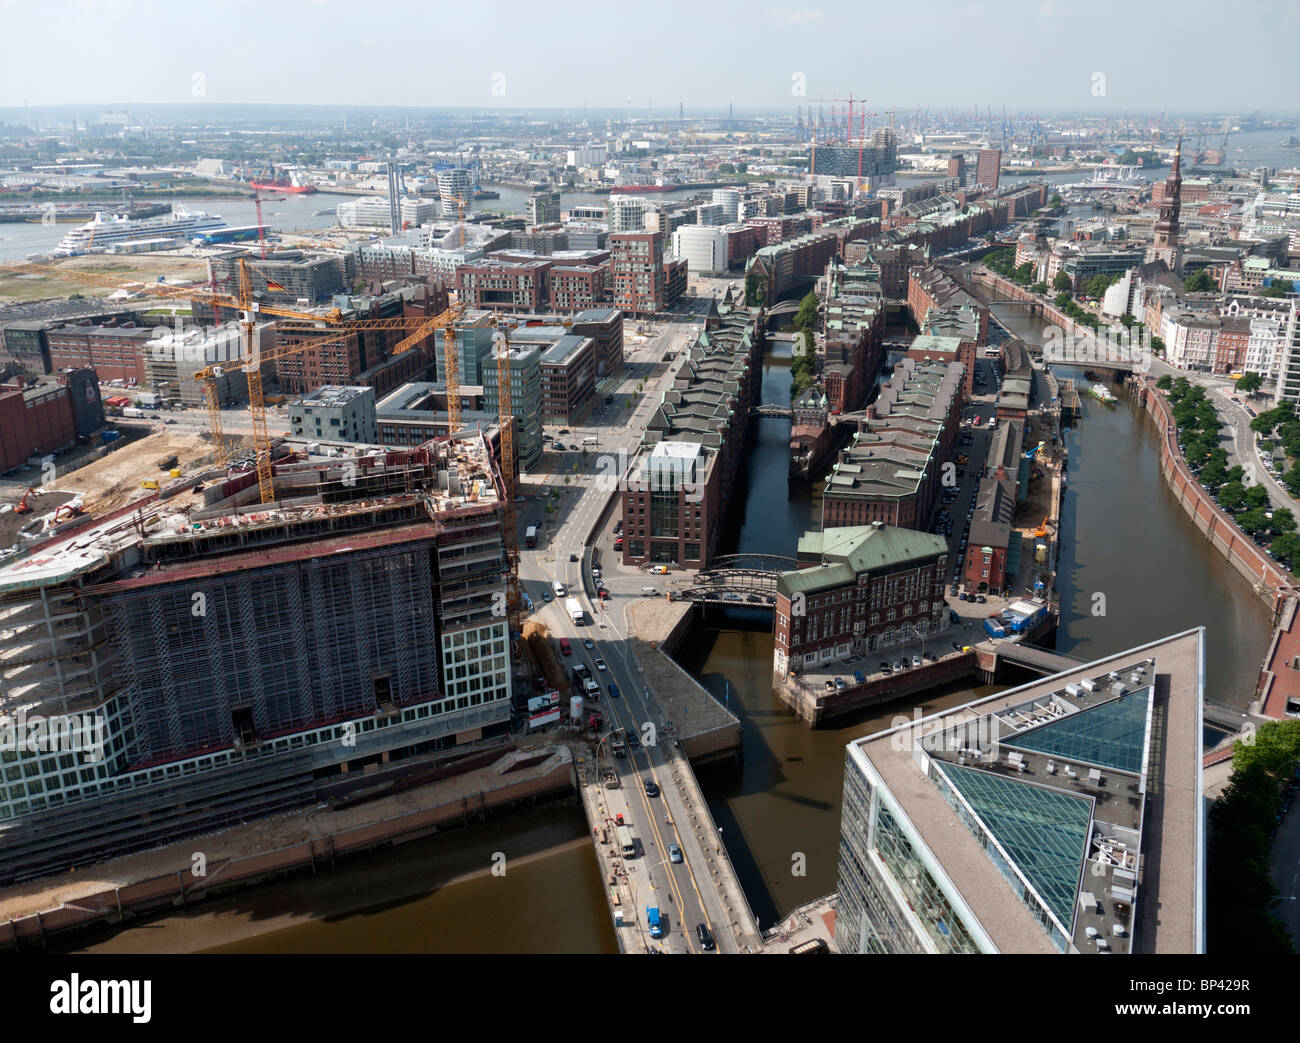 Cityscape of Hafencity new urban redevelopment with historic Speicherstadt in middle in Hamburg Germany - Stock Image